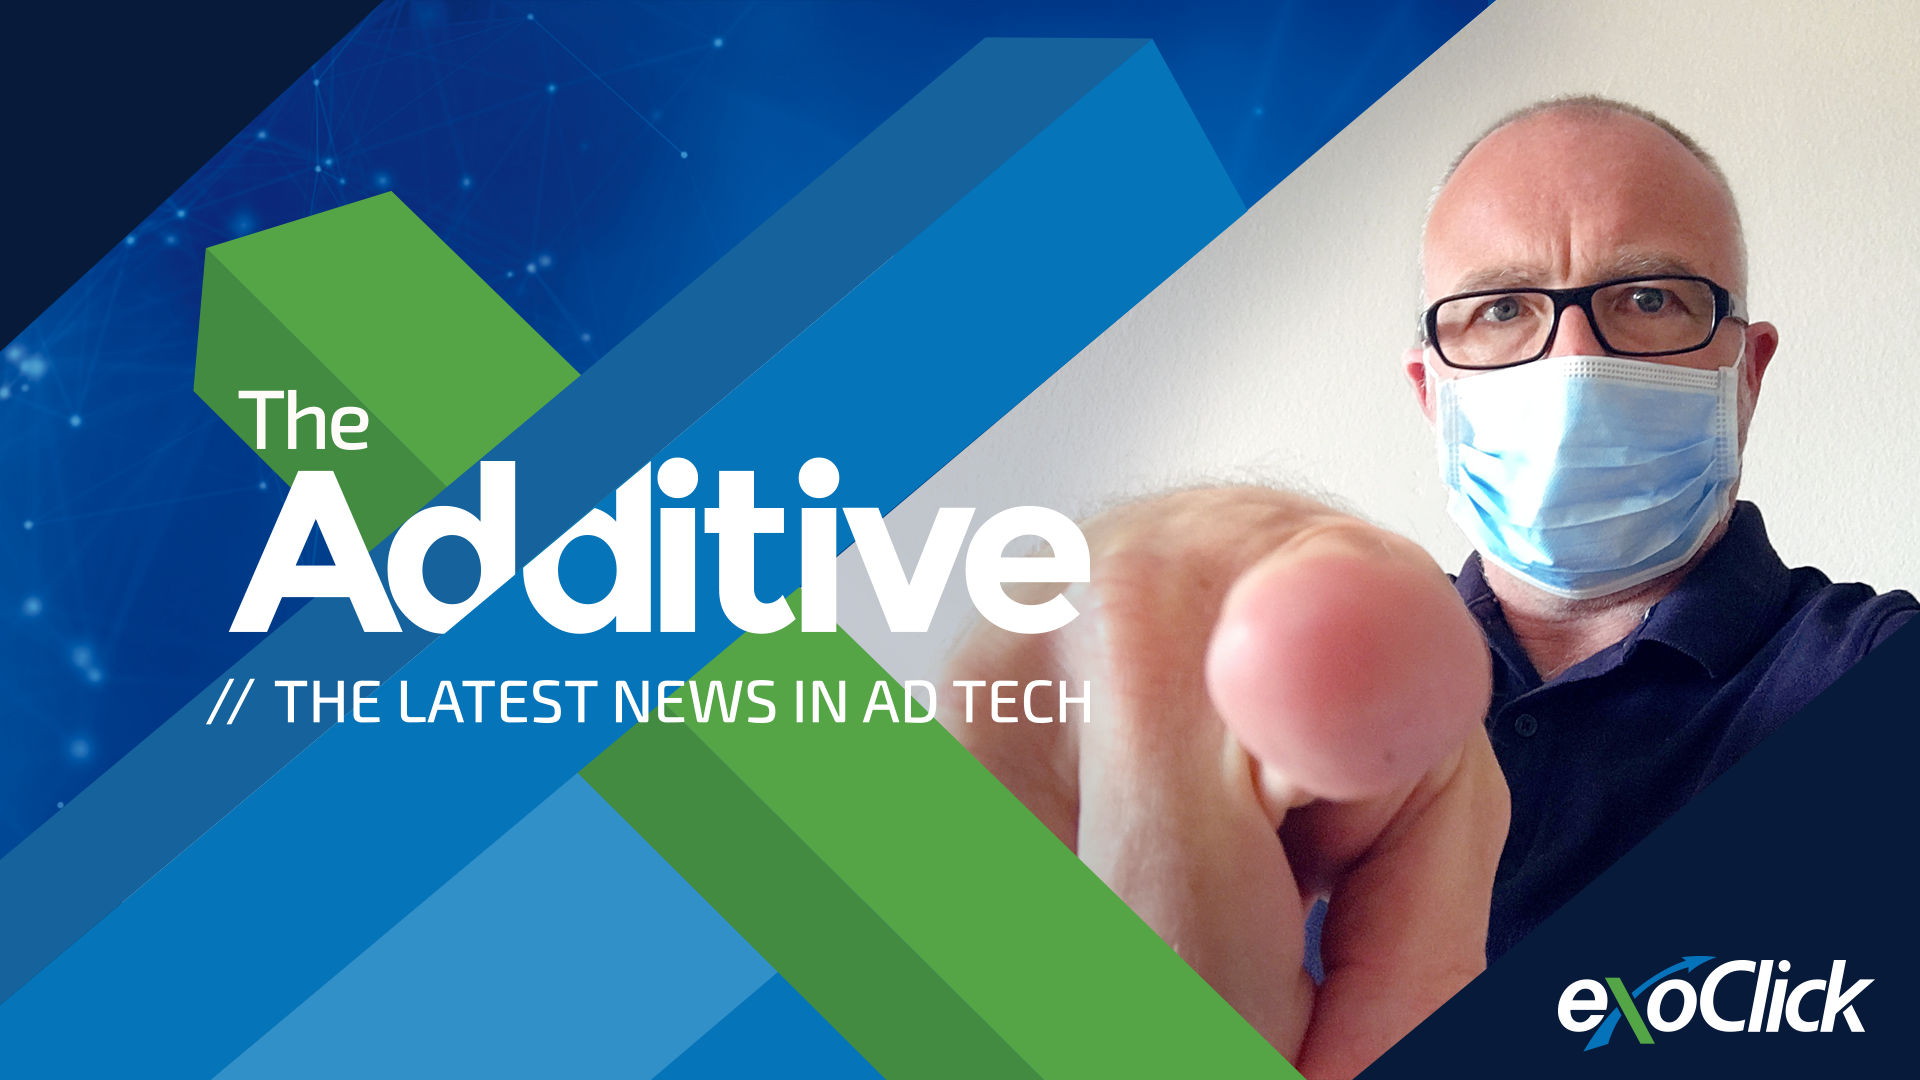 The Additive May/June 2020